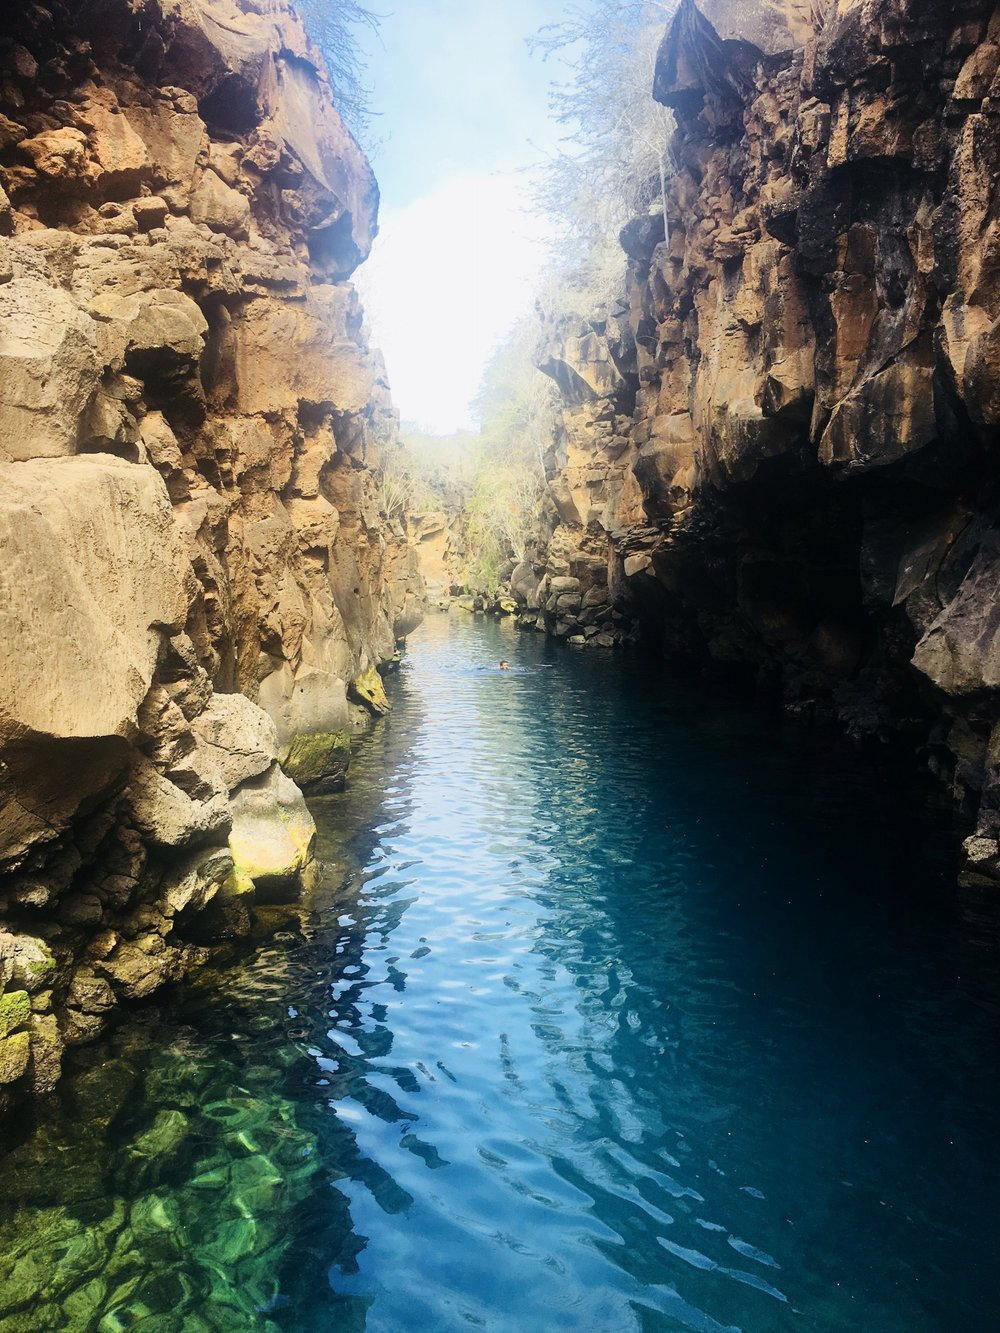 The story book waters of Las Grietas